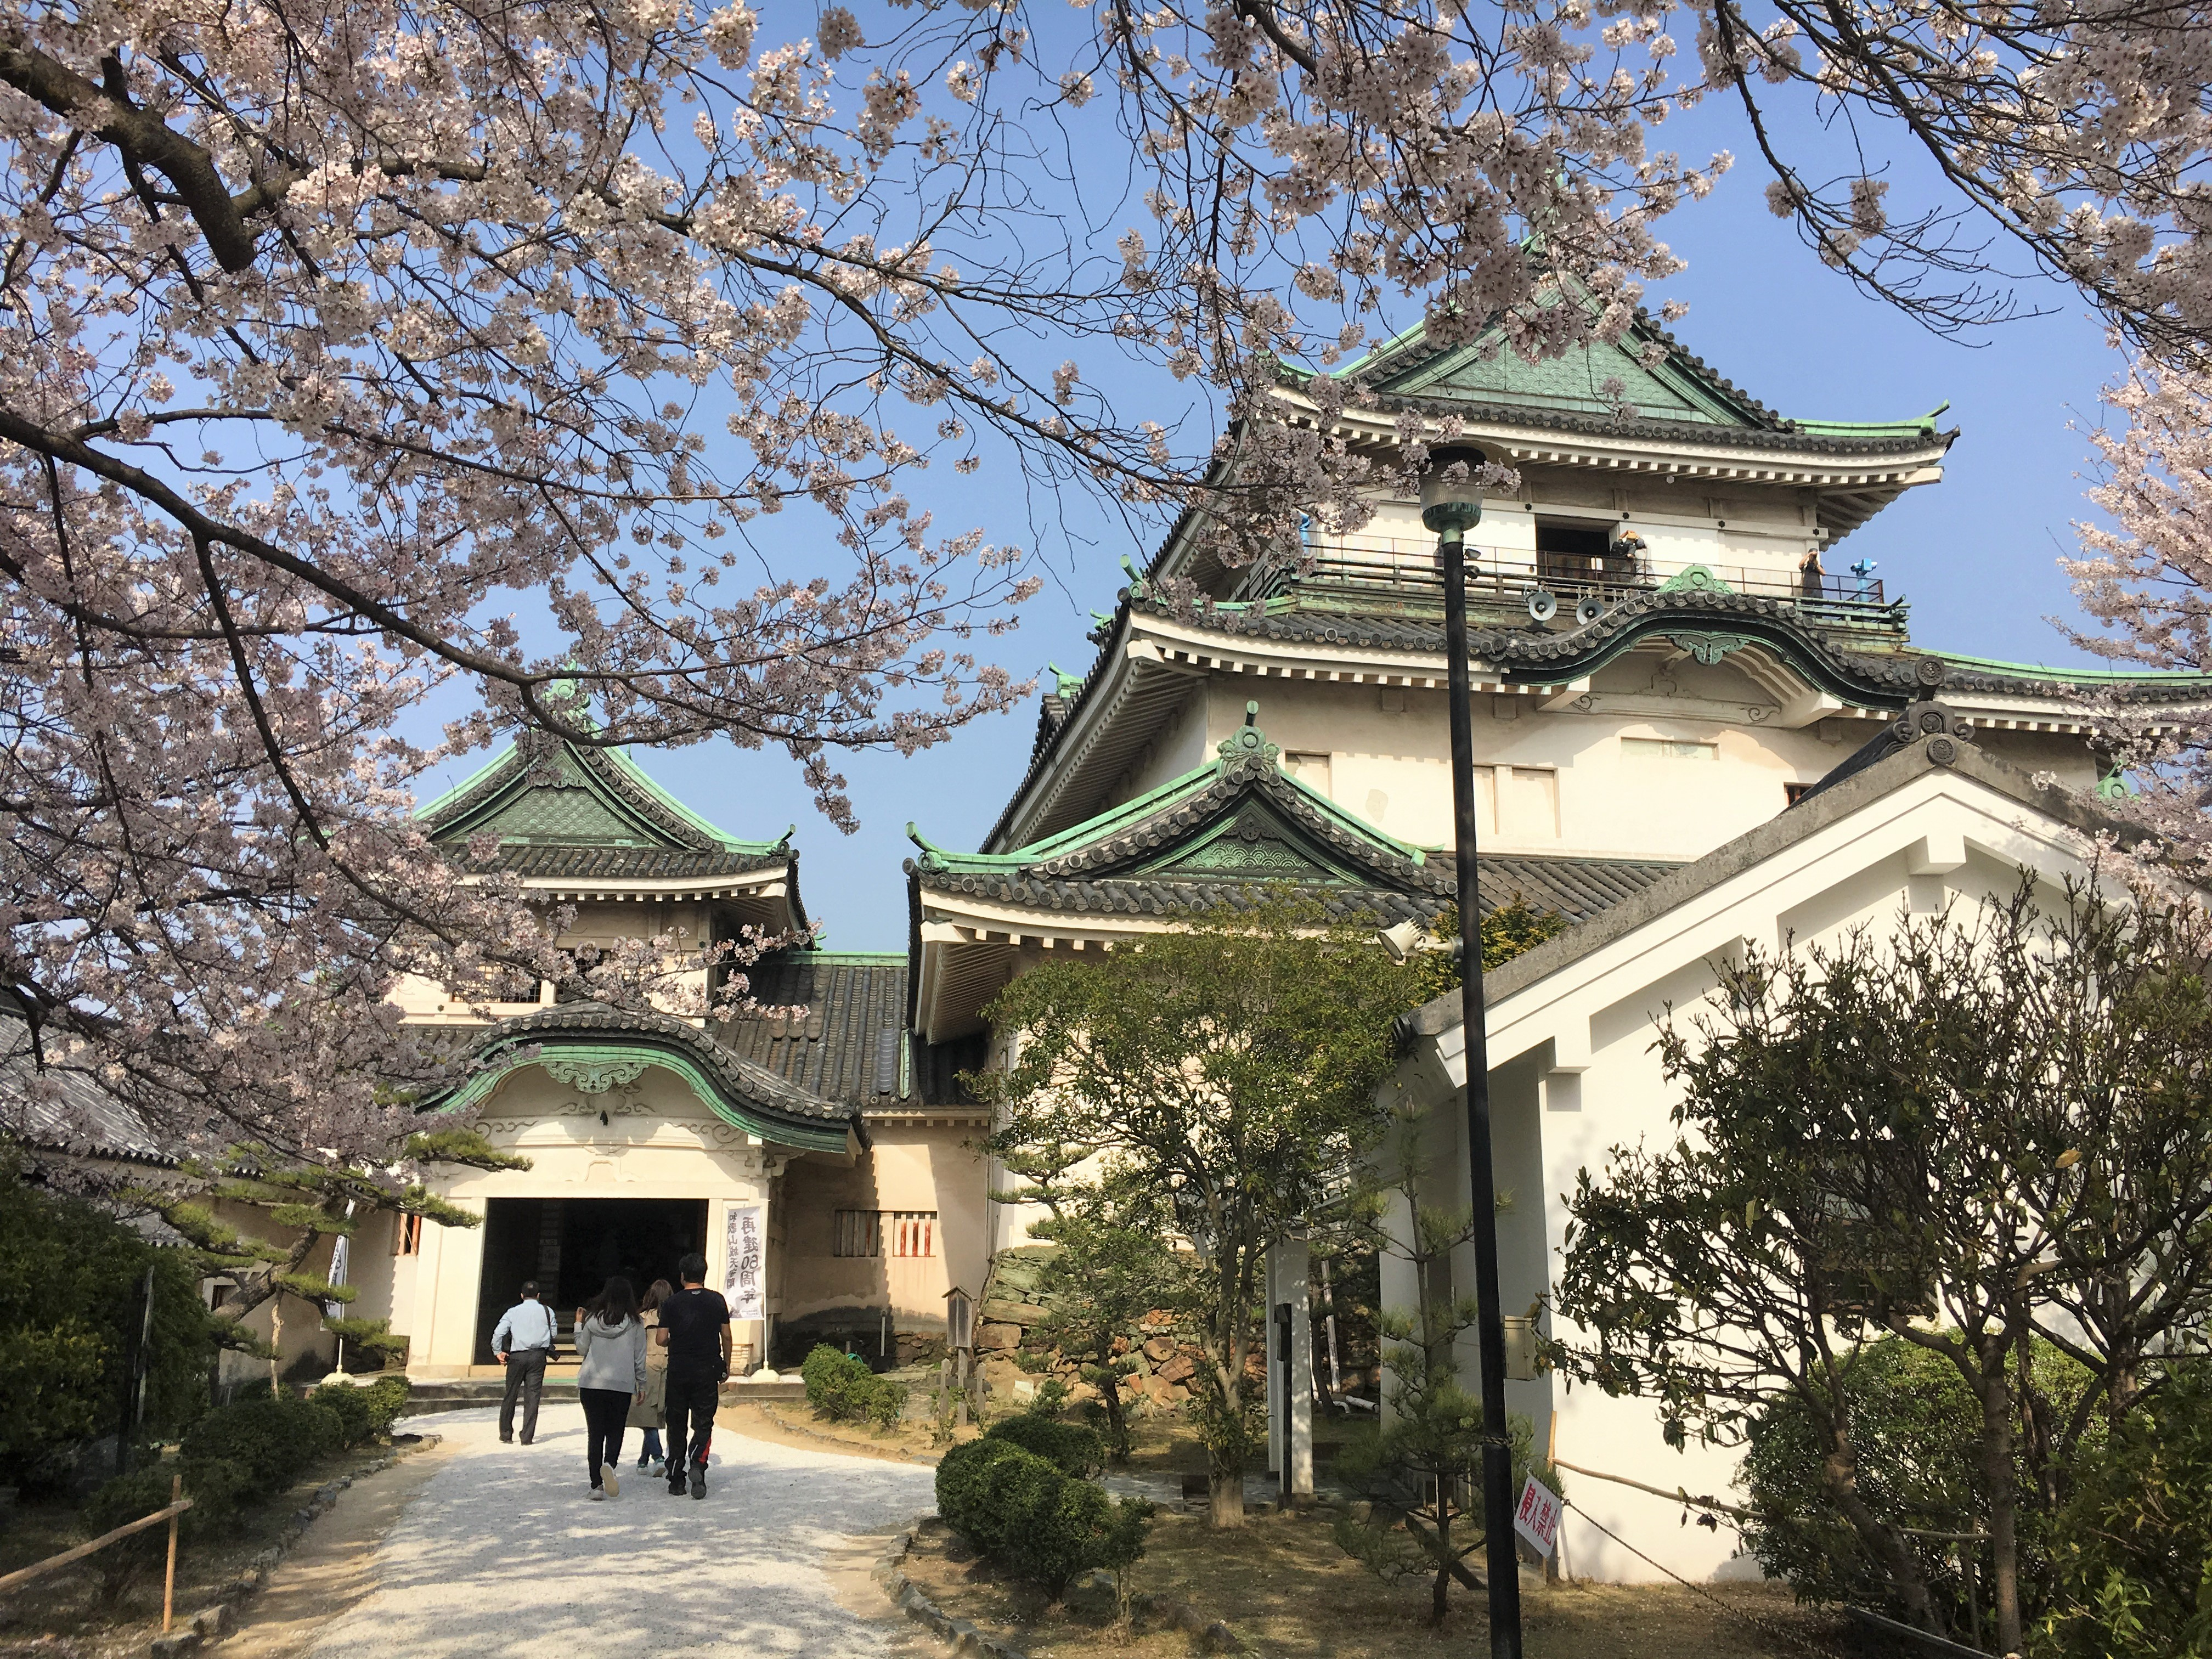 Entrance of Wakayama castle museum and blooming cherry blossoms